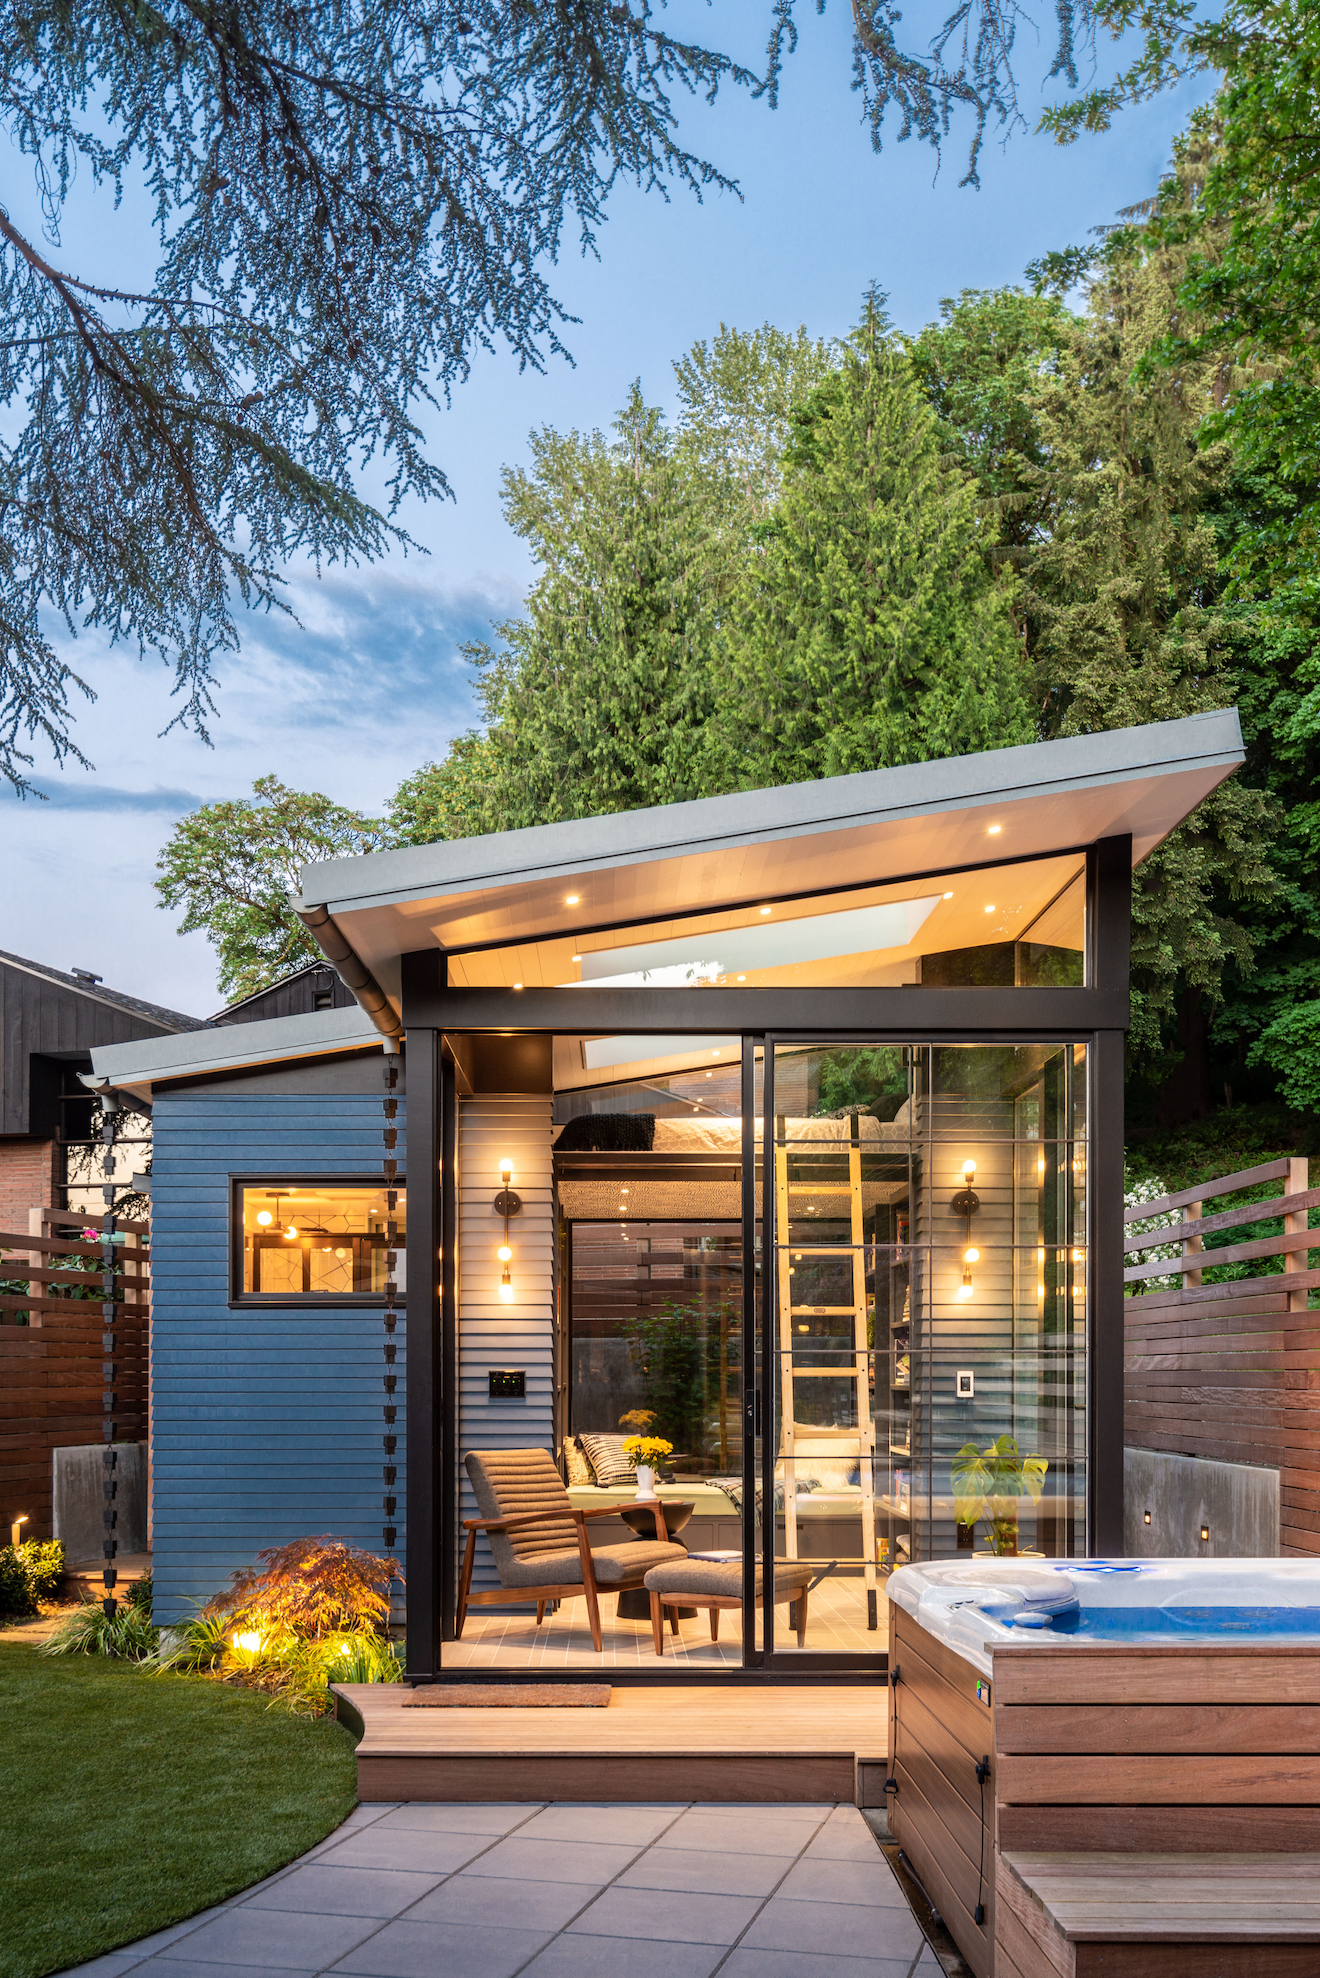 These homeowners turned a tiny guest house into a dreamy outdoor library